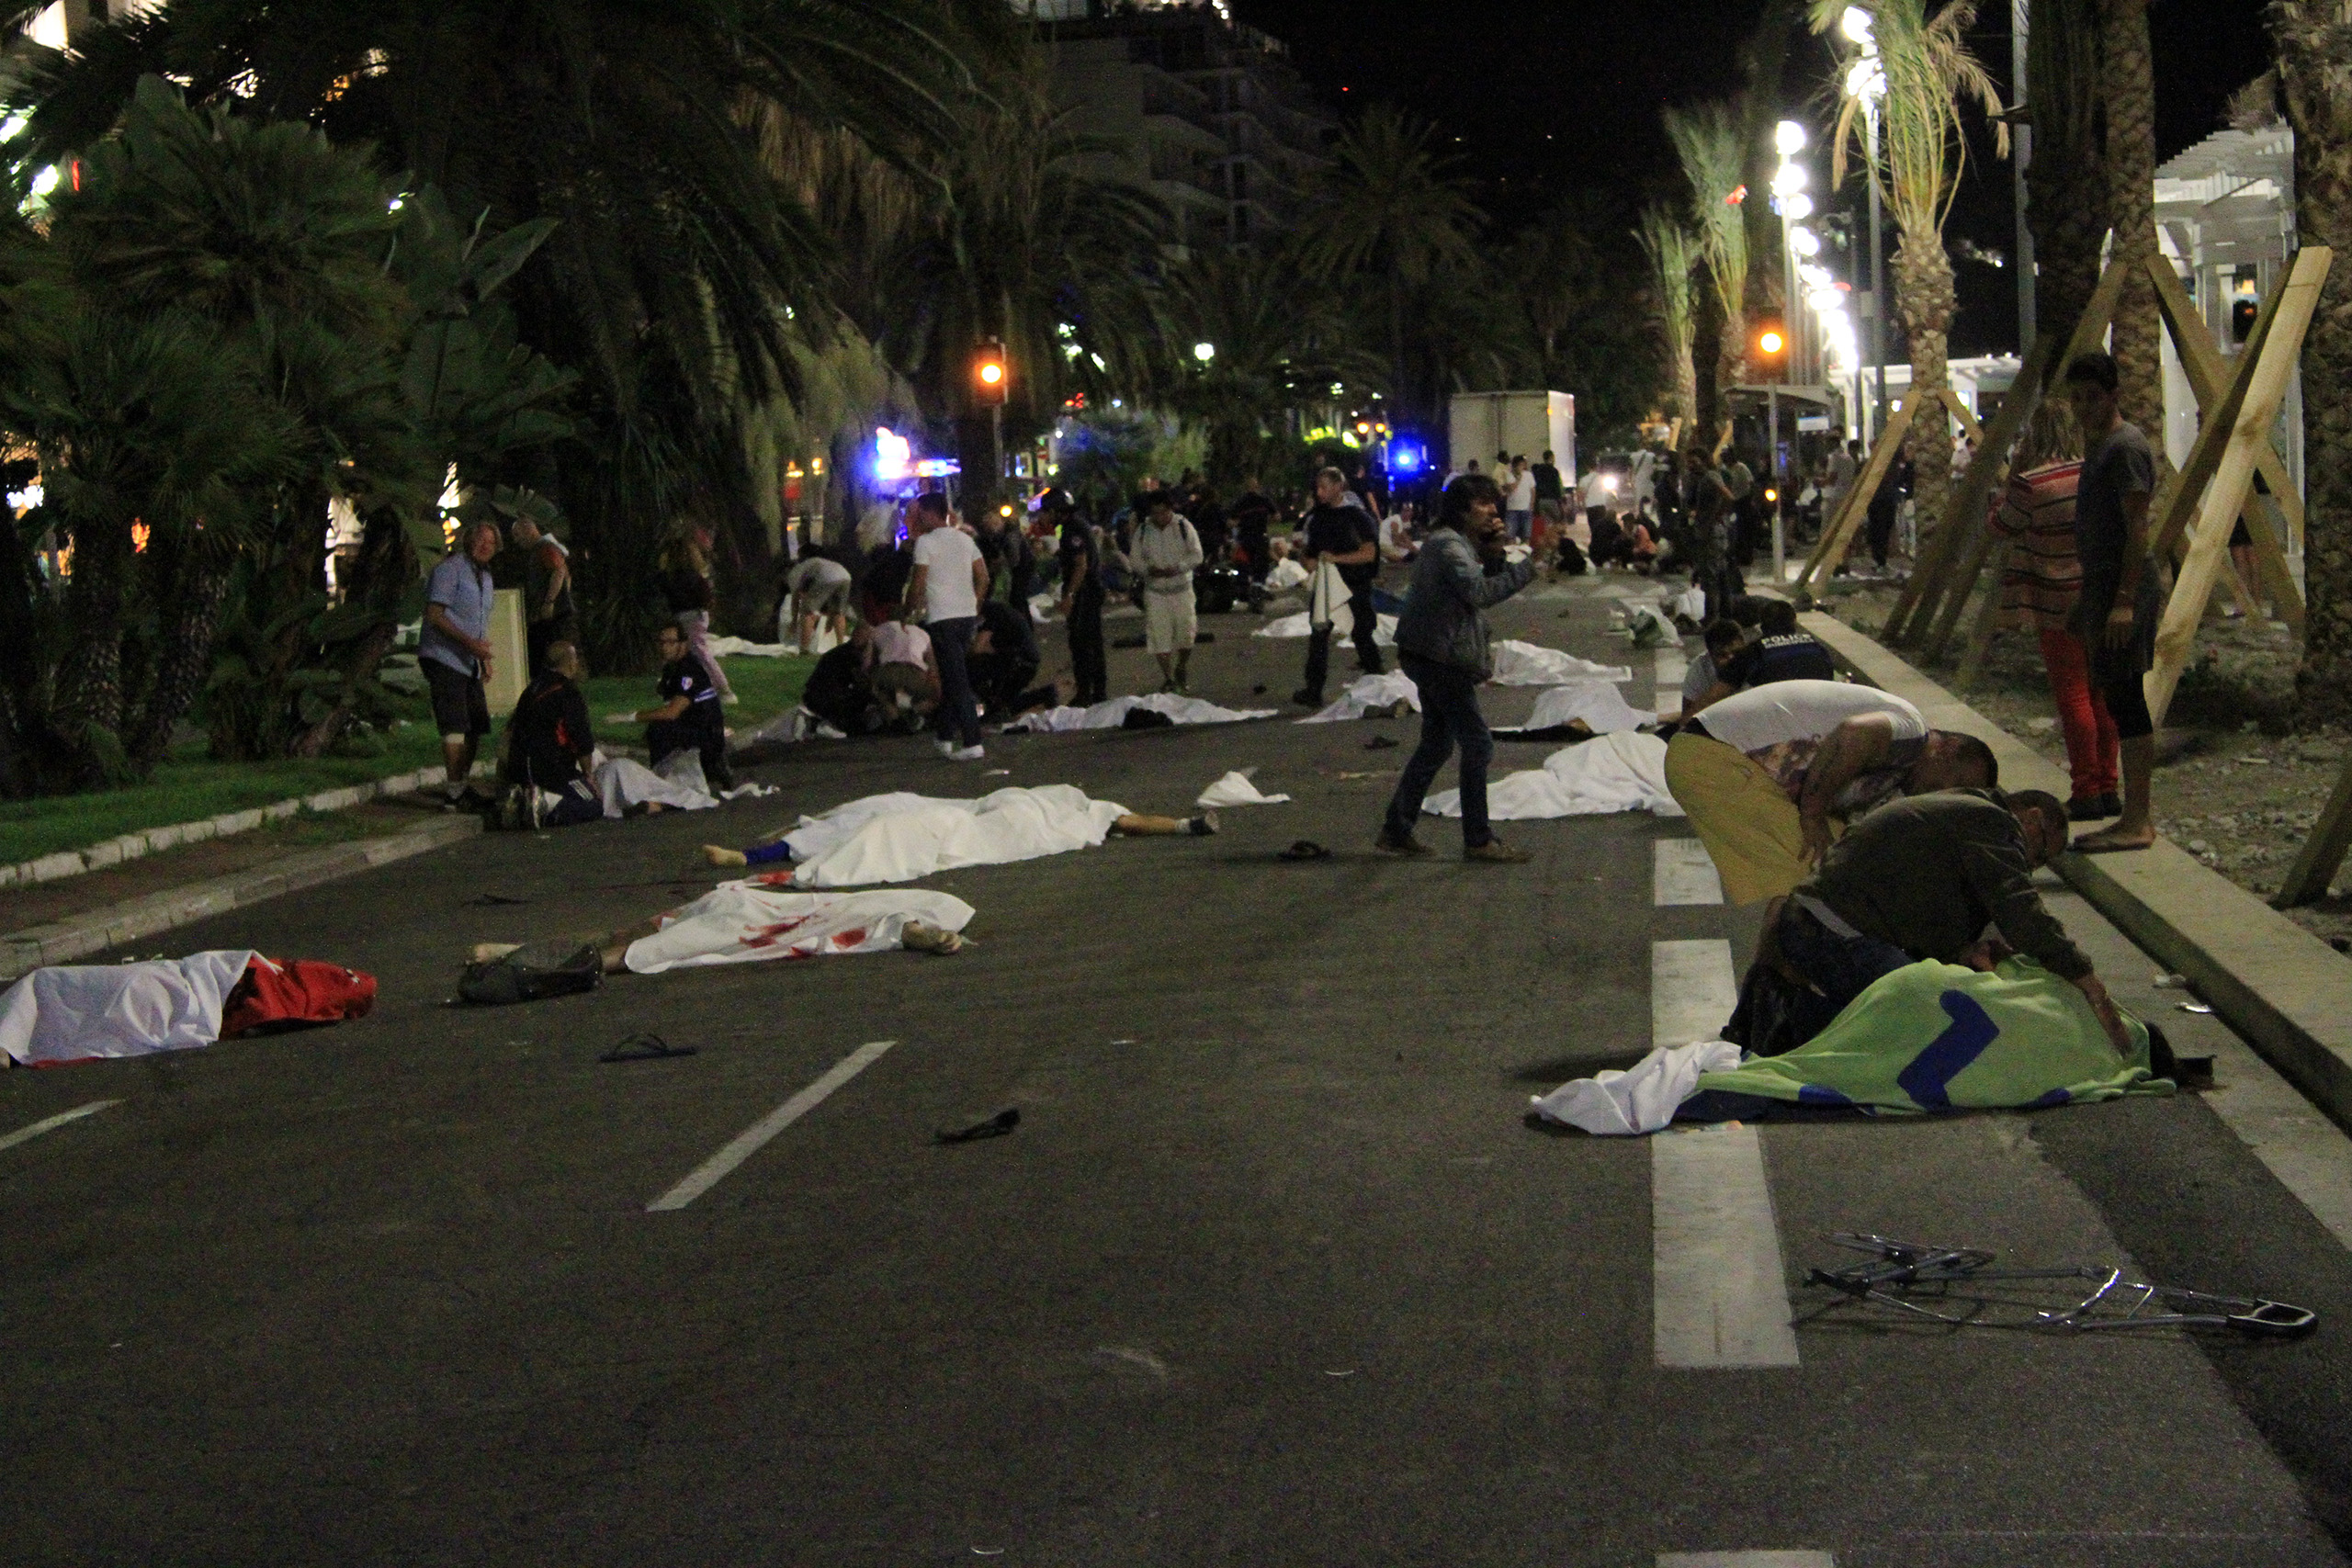 Bodies lie in the streets of Nice, France, after a terrorist attack that left at least 77 dead and dozens injured on July 14, 2016.